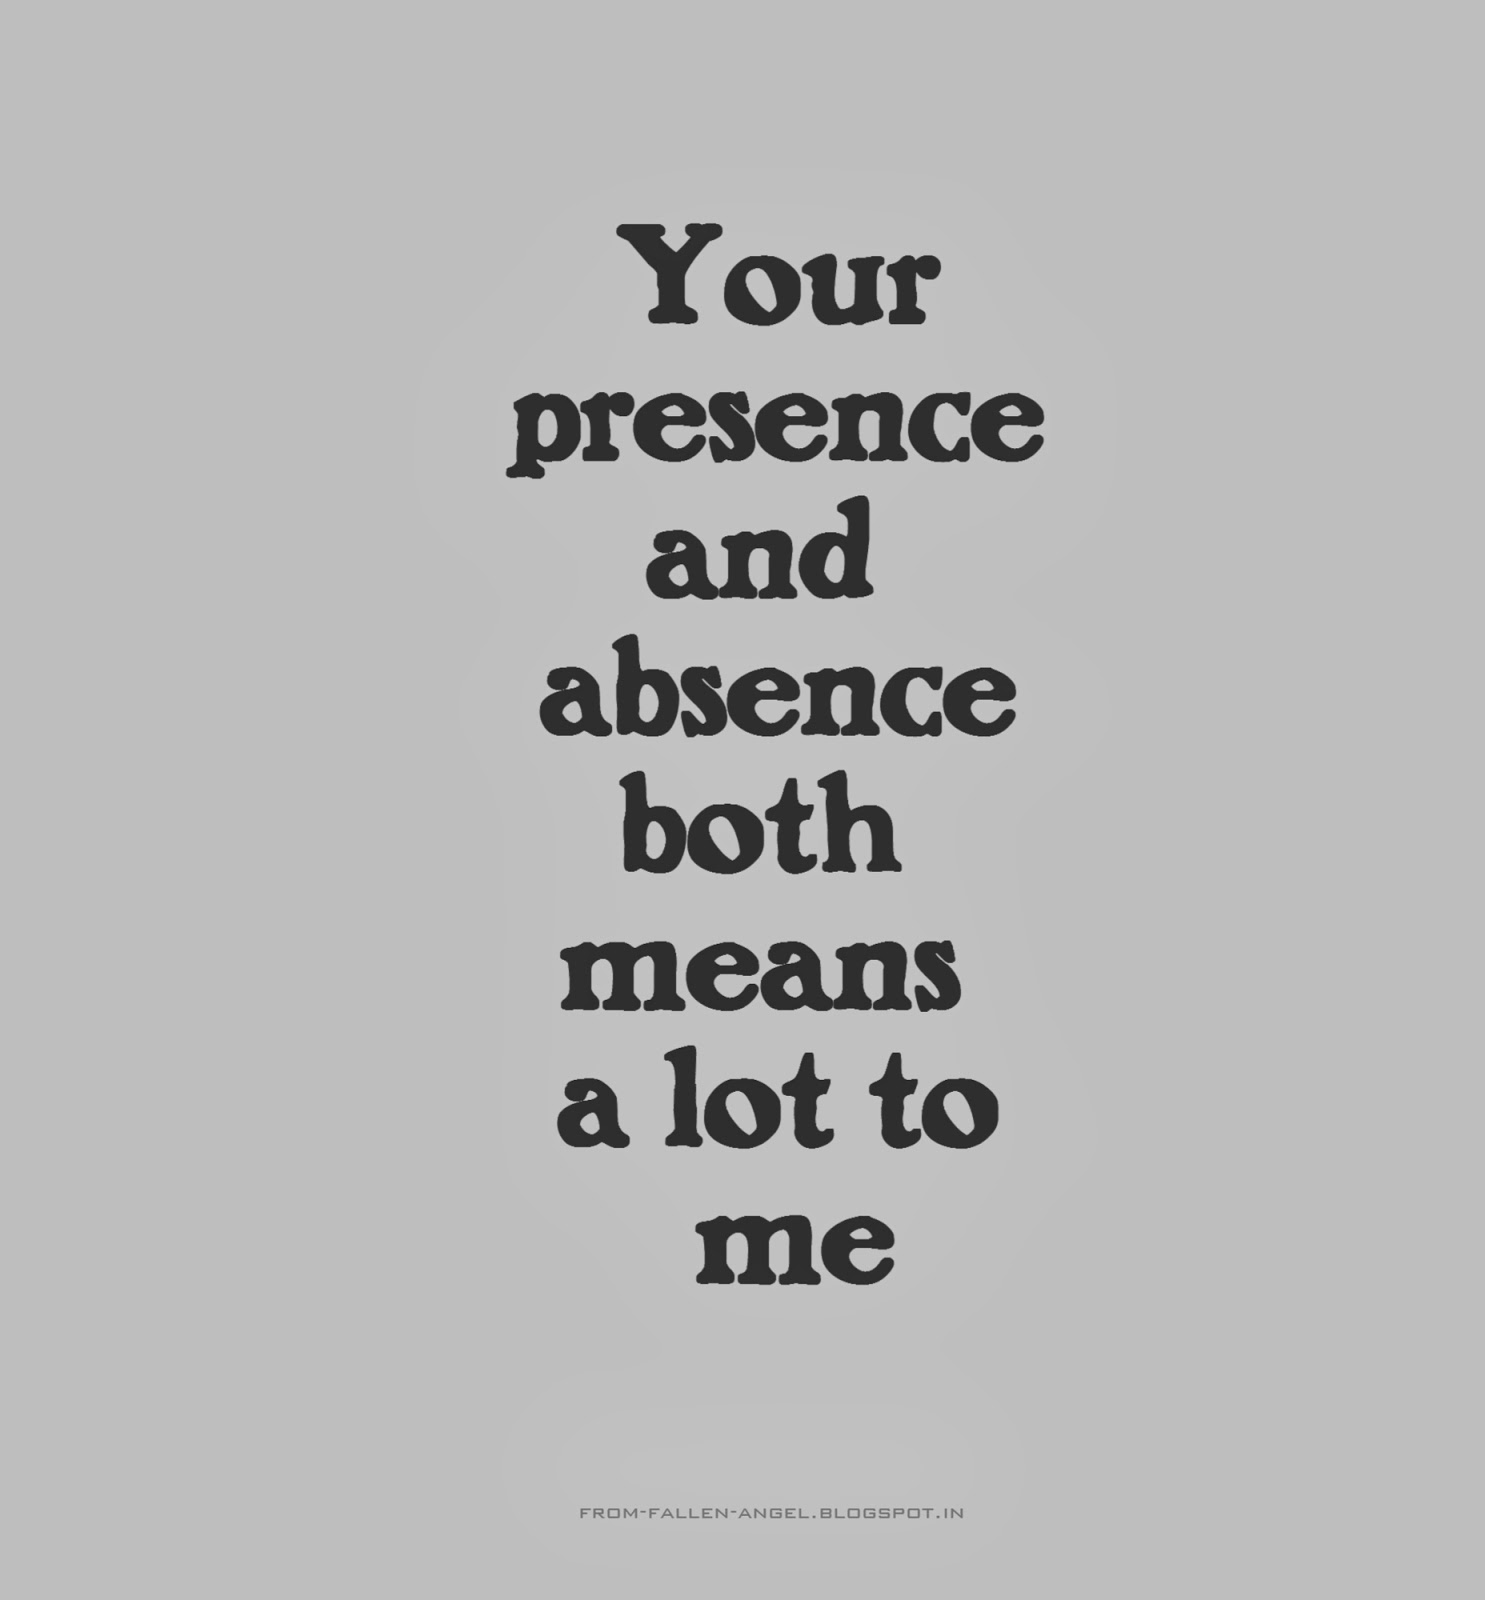 Your presence and absence both means a lot to me